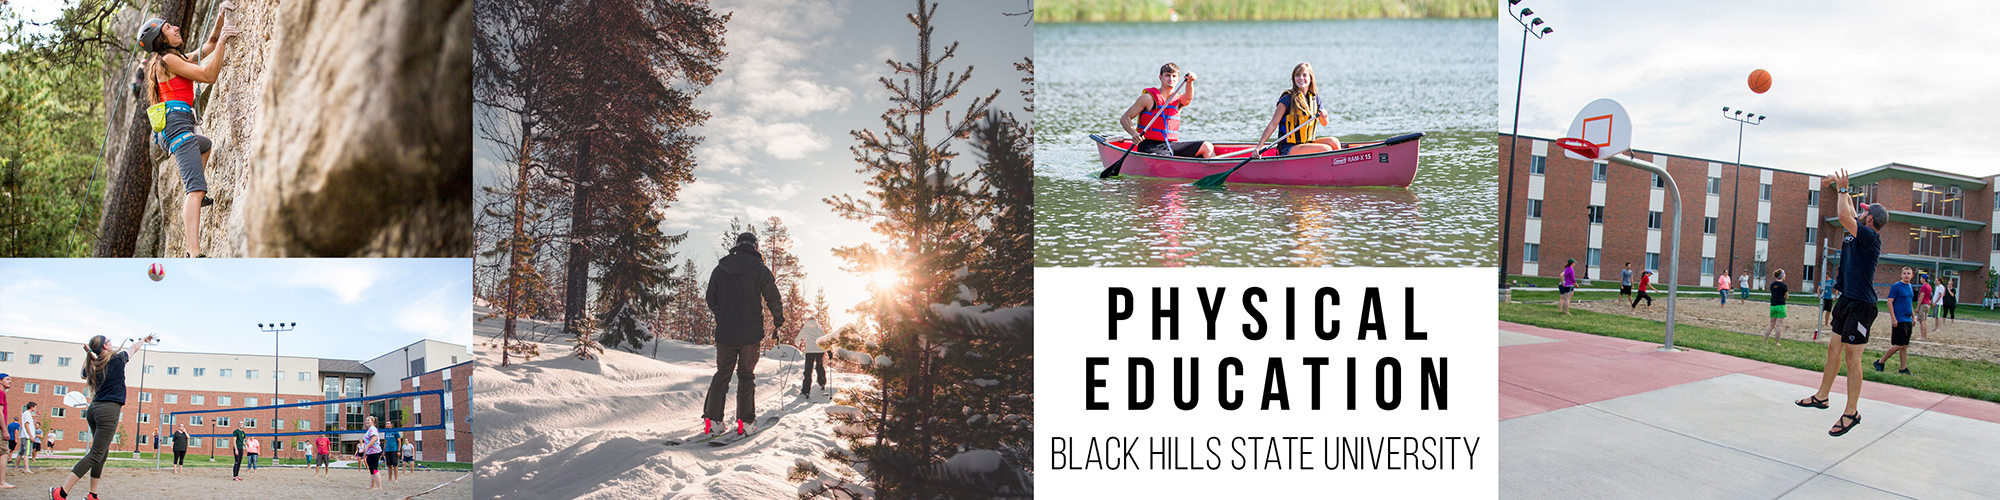 Discover your passion with Physical Education at BHSU.